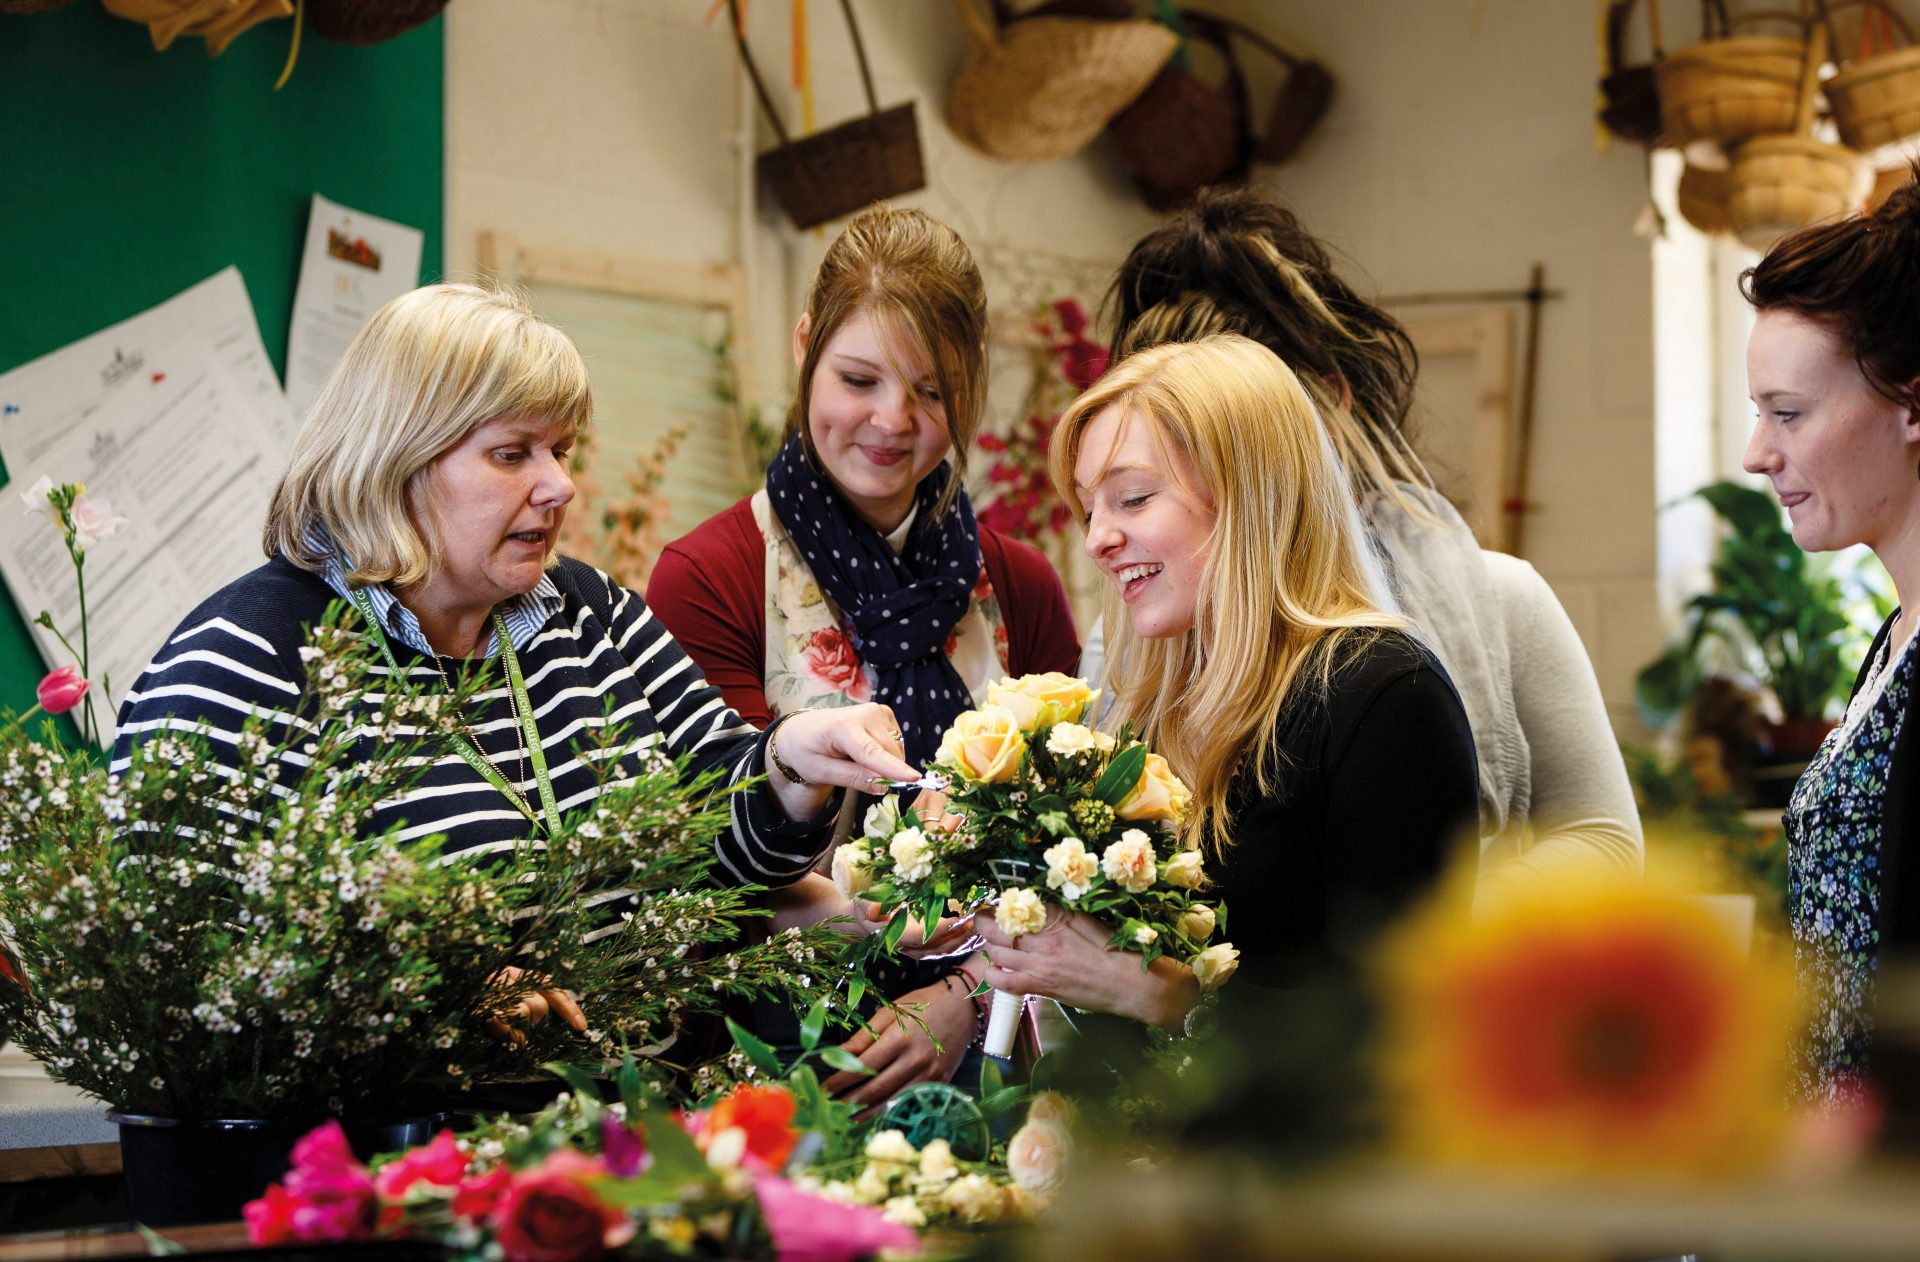 Floristry students receive a lecture on different types of plant from their tutor